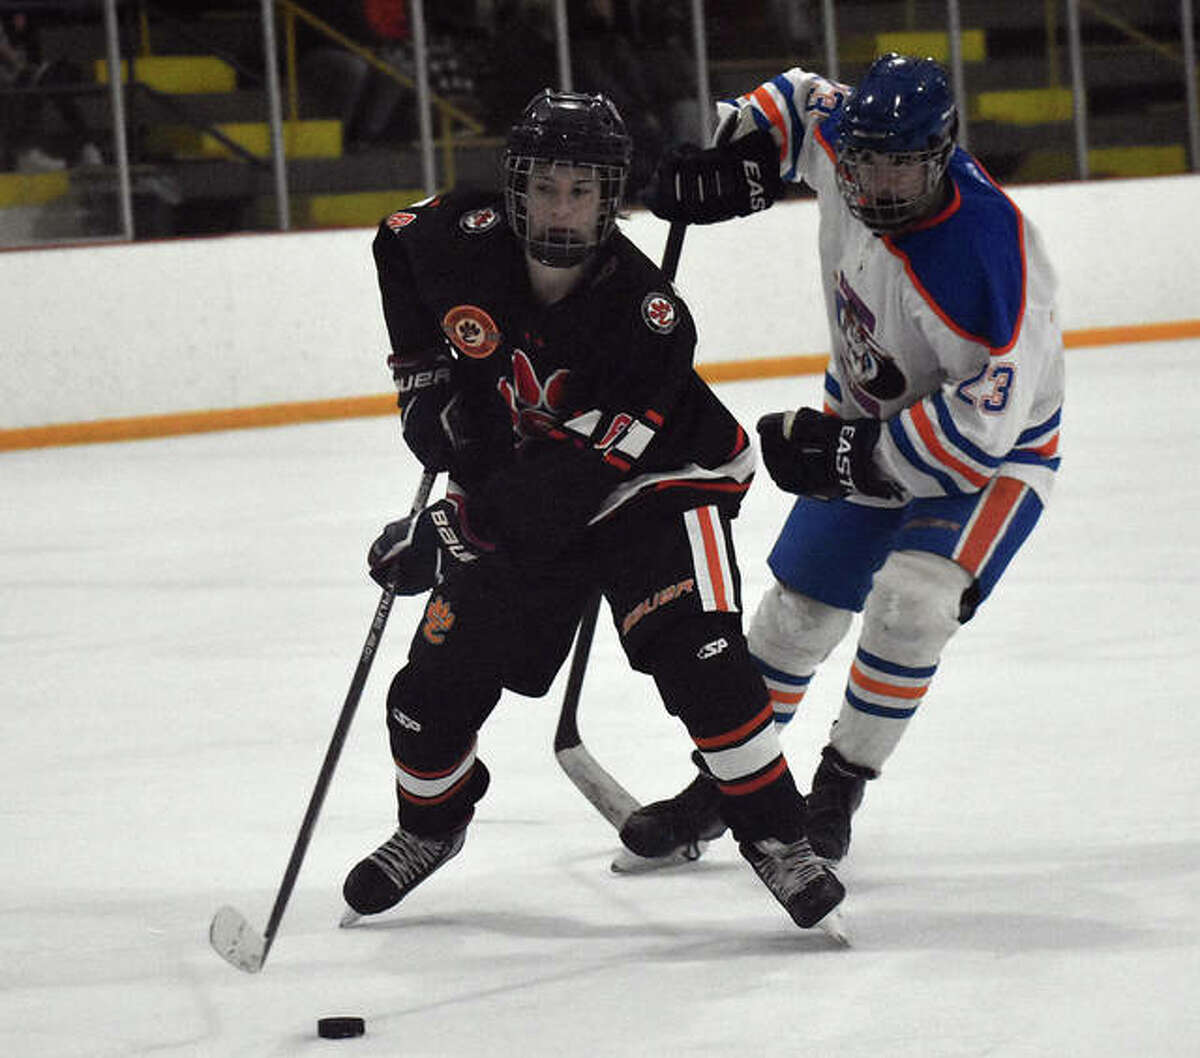 Edwardsville forward Fred Bramstedt takes control of the puck during the second period against Freeburg-Waterloo on Thursday.